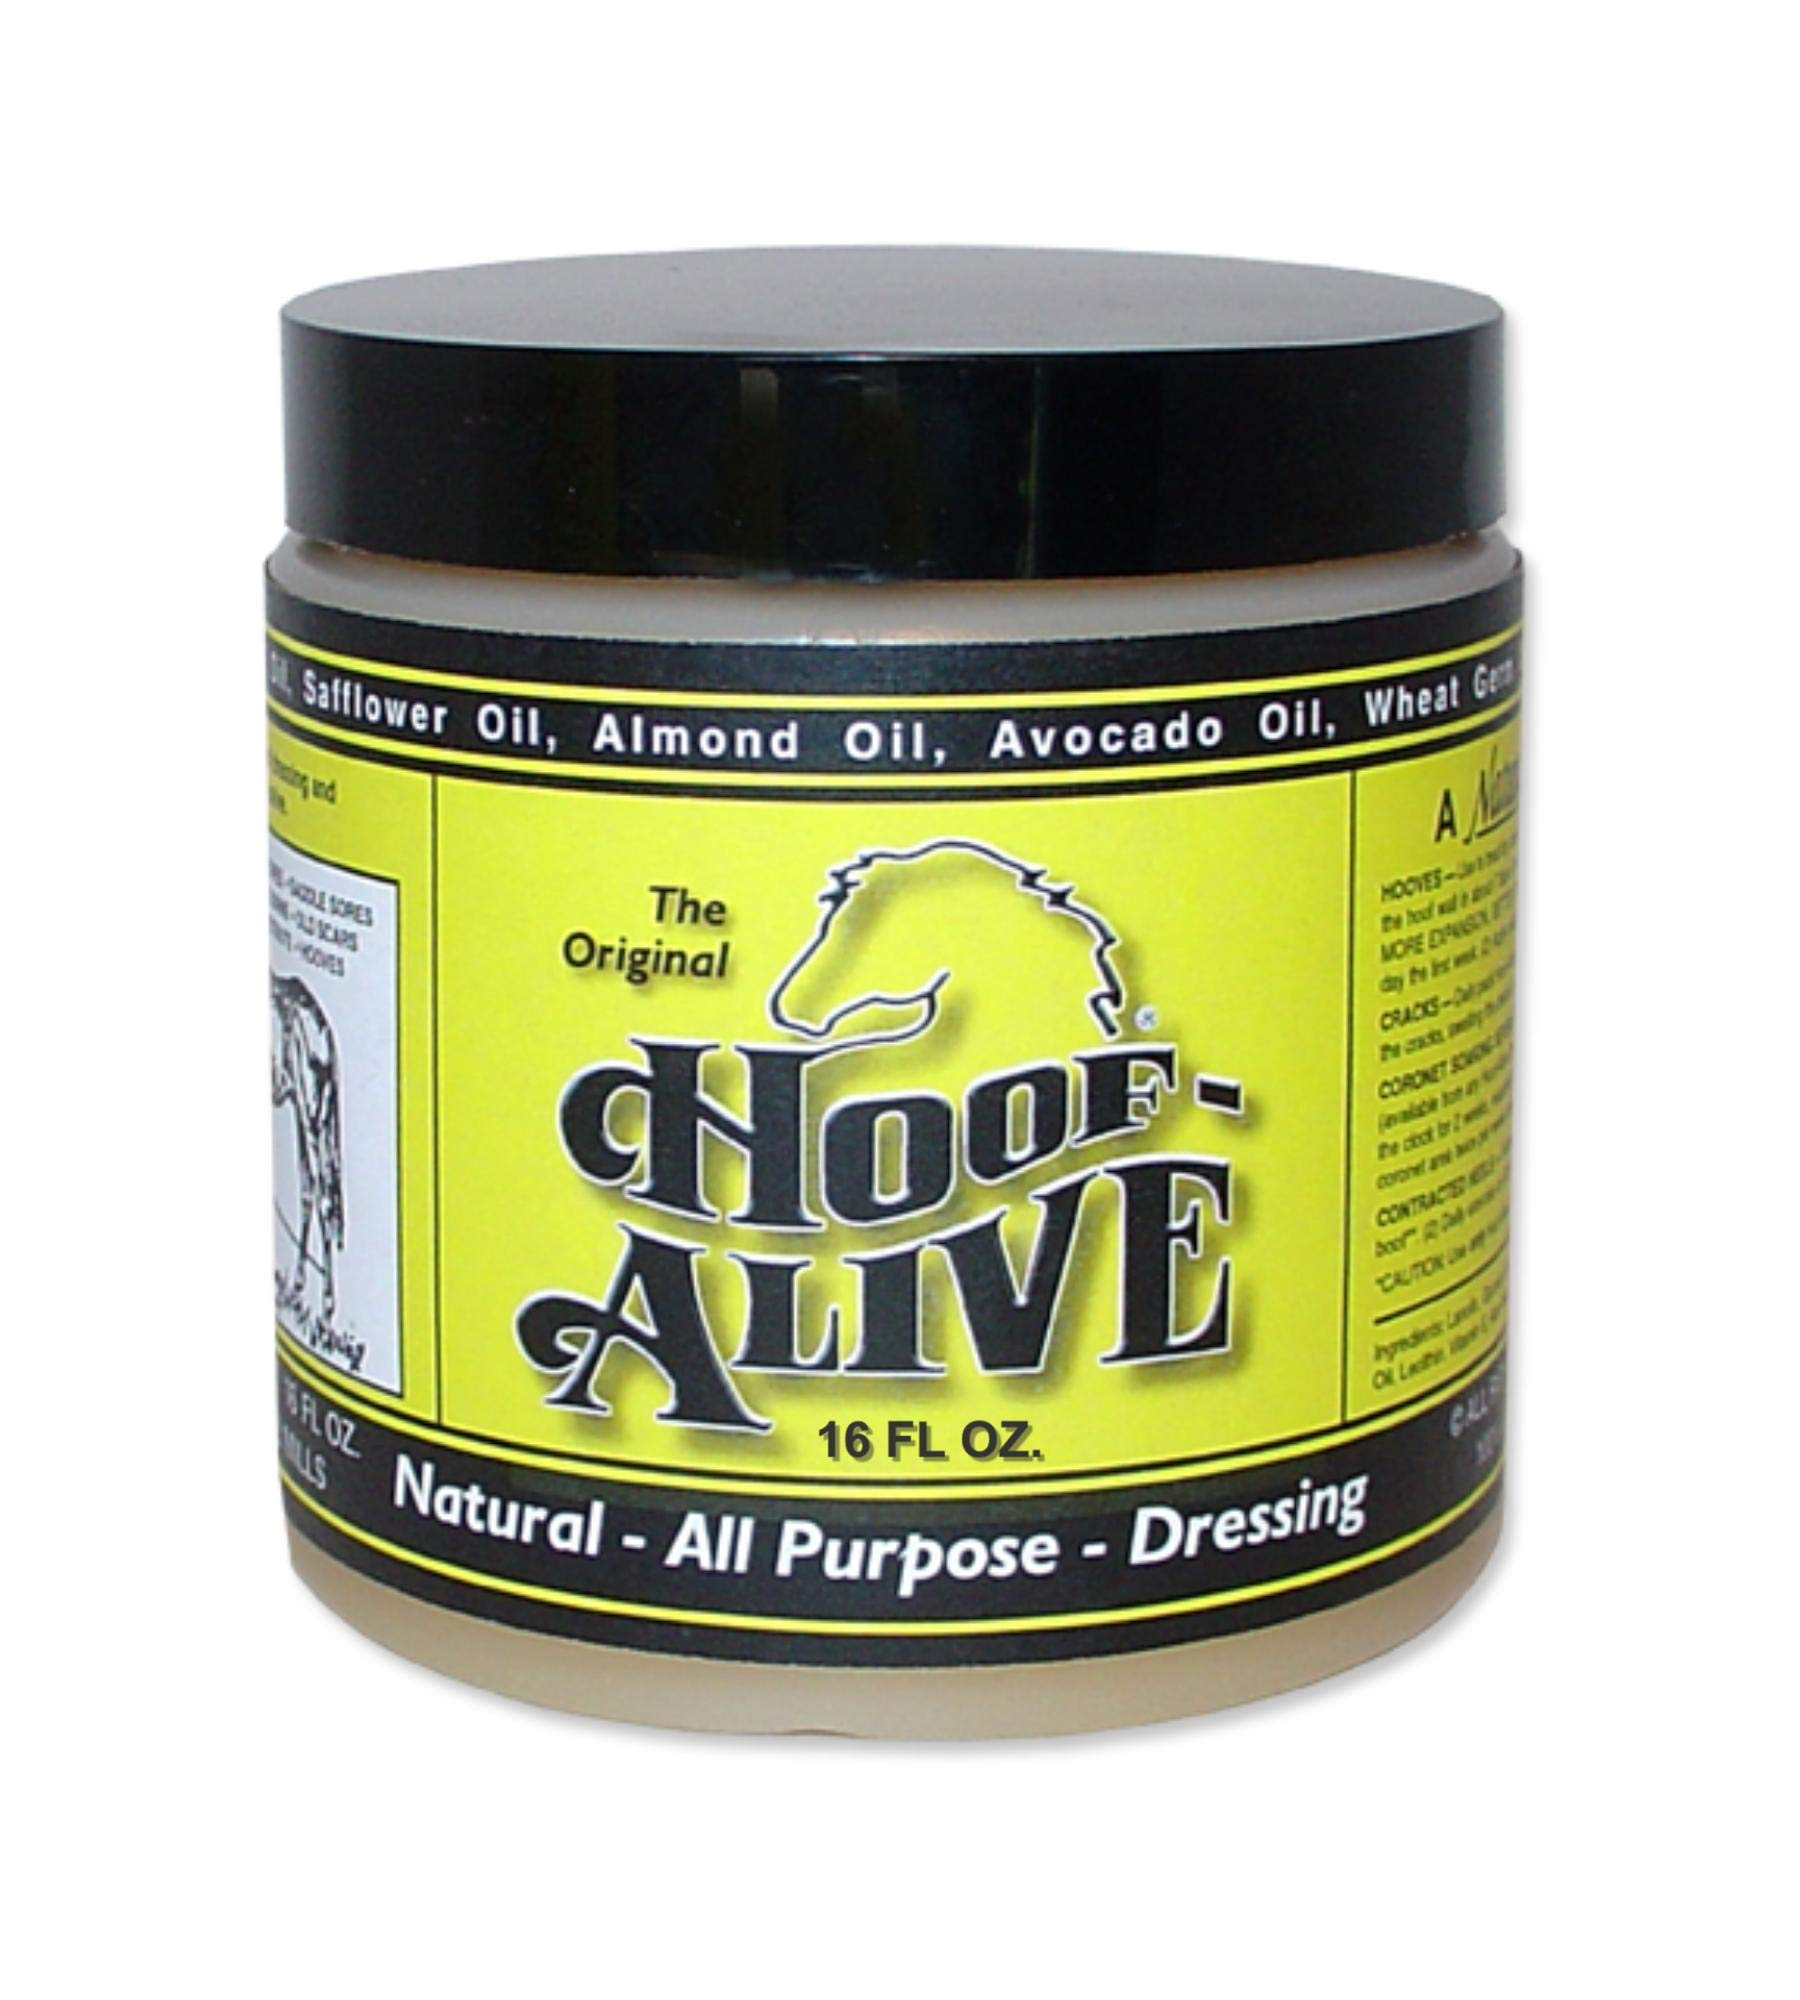 Hoof-Alive. Natural, All-Purpose Dressing Penetrates Hoof Wall and Living Tissue. Promotes Strong, Healthy Hoof Growth While Healing Water and Quarter Cracks. Non-Irritating. Petroleum-Free. (16) by Hoof-Alive